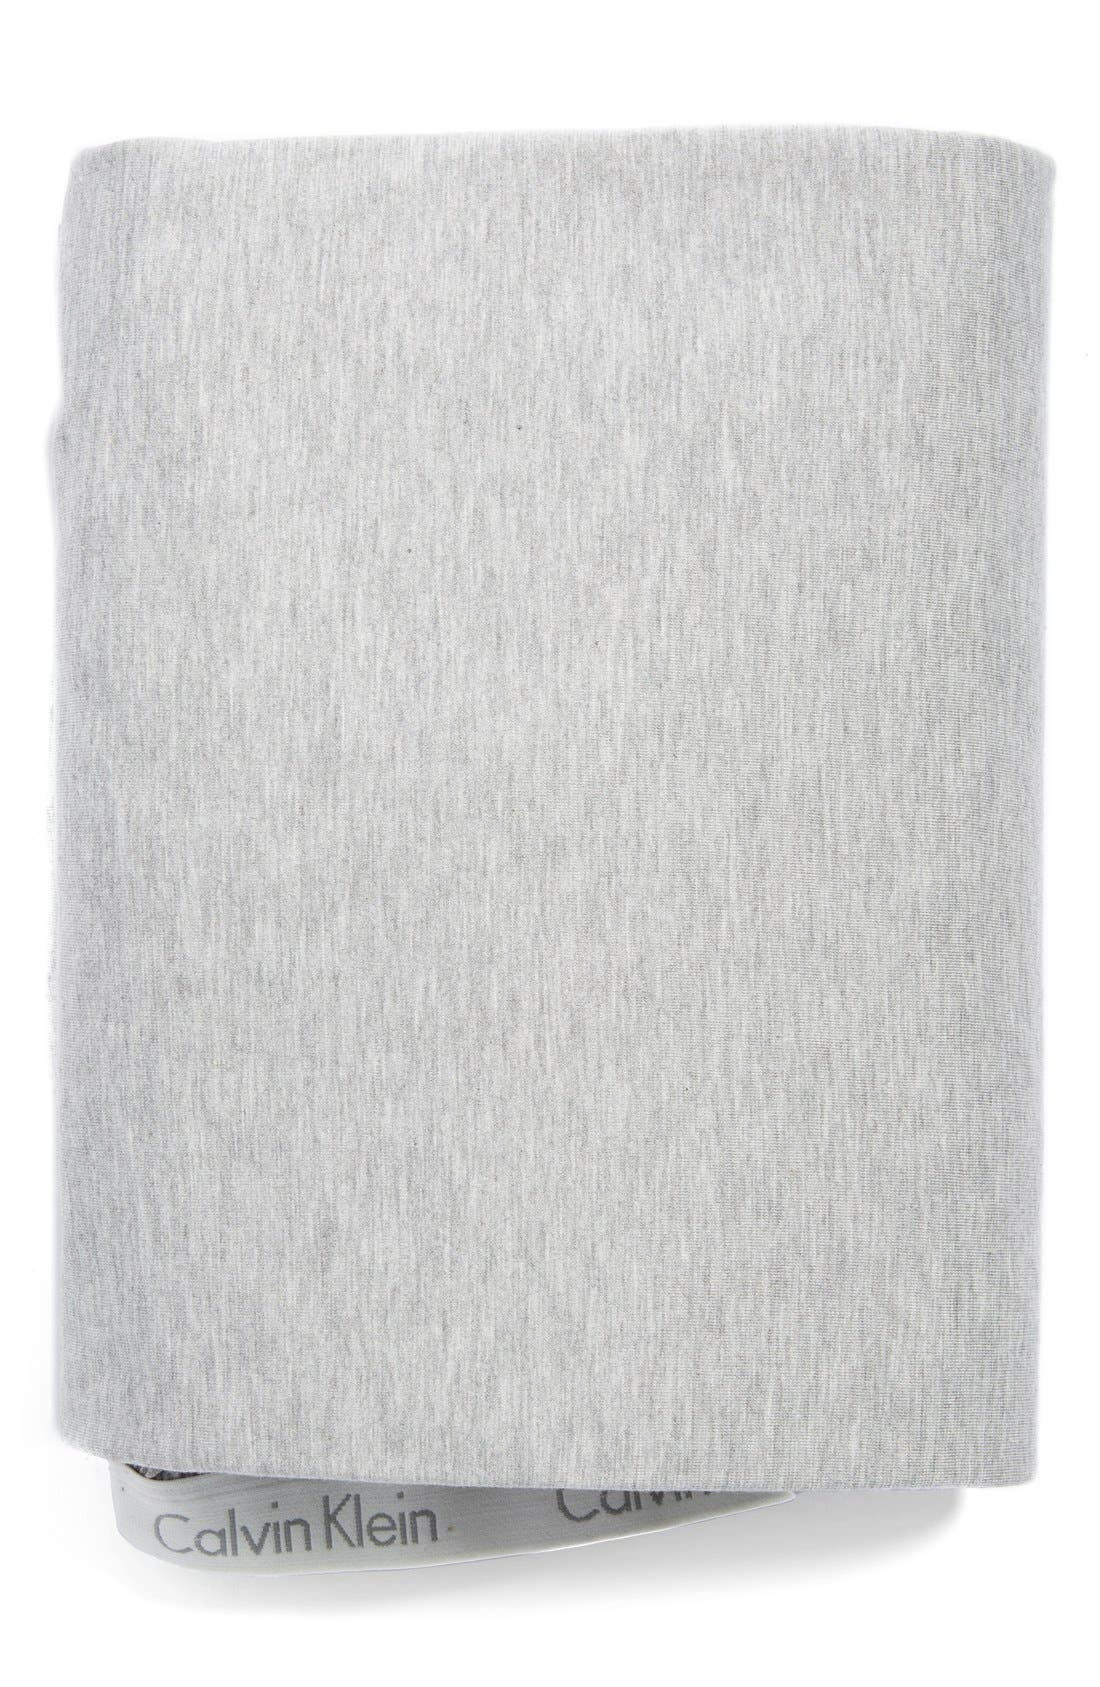 Calvin Klein Home Modern Cotton Collection Cotton & Modal Fitted Sheet